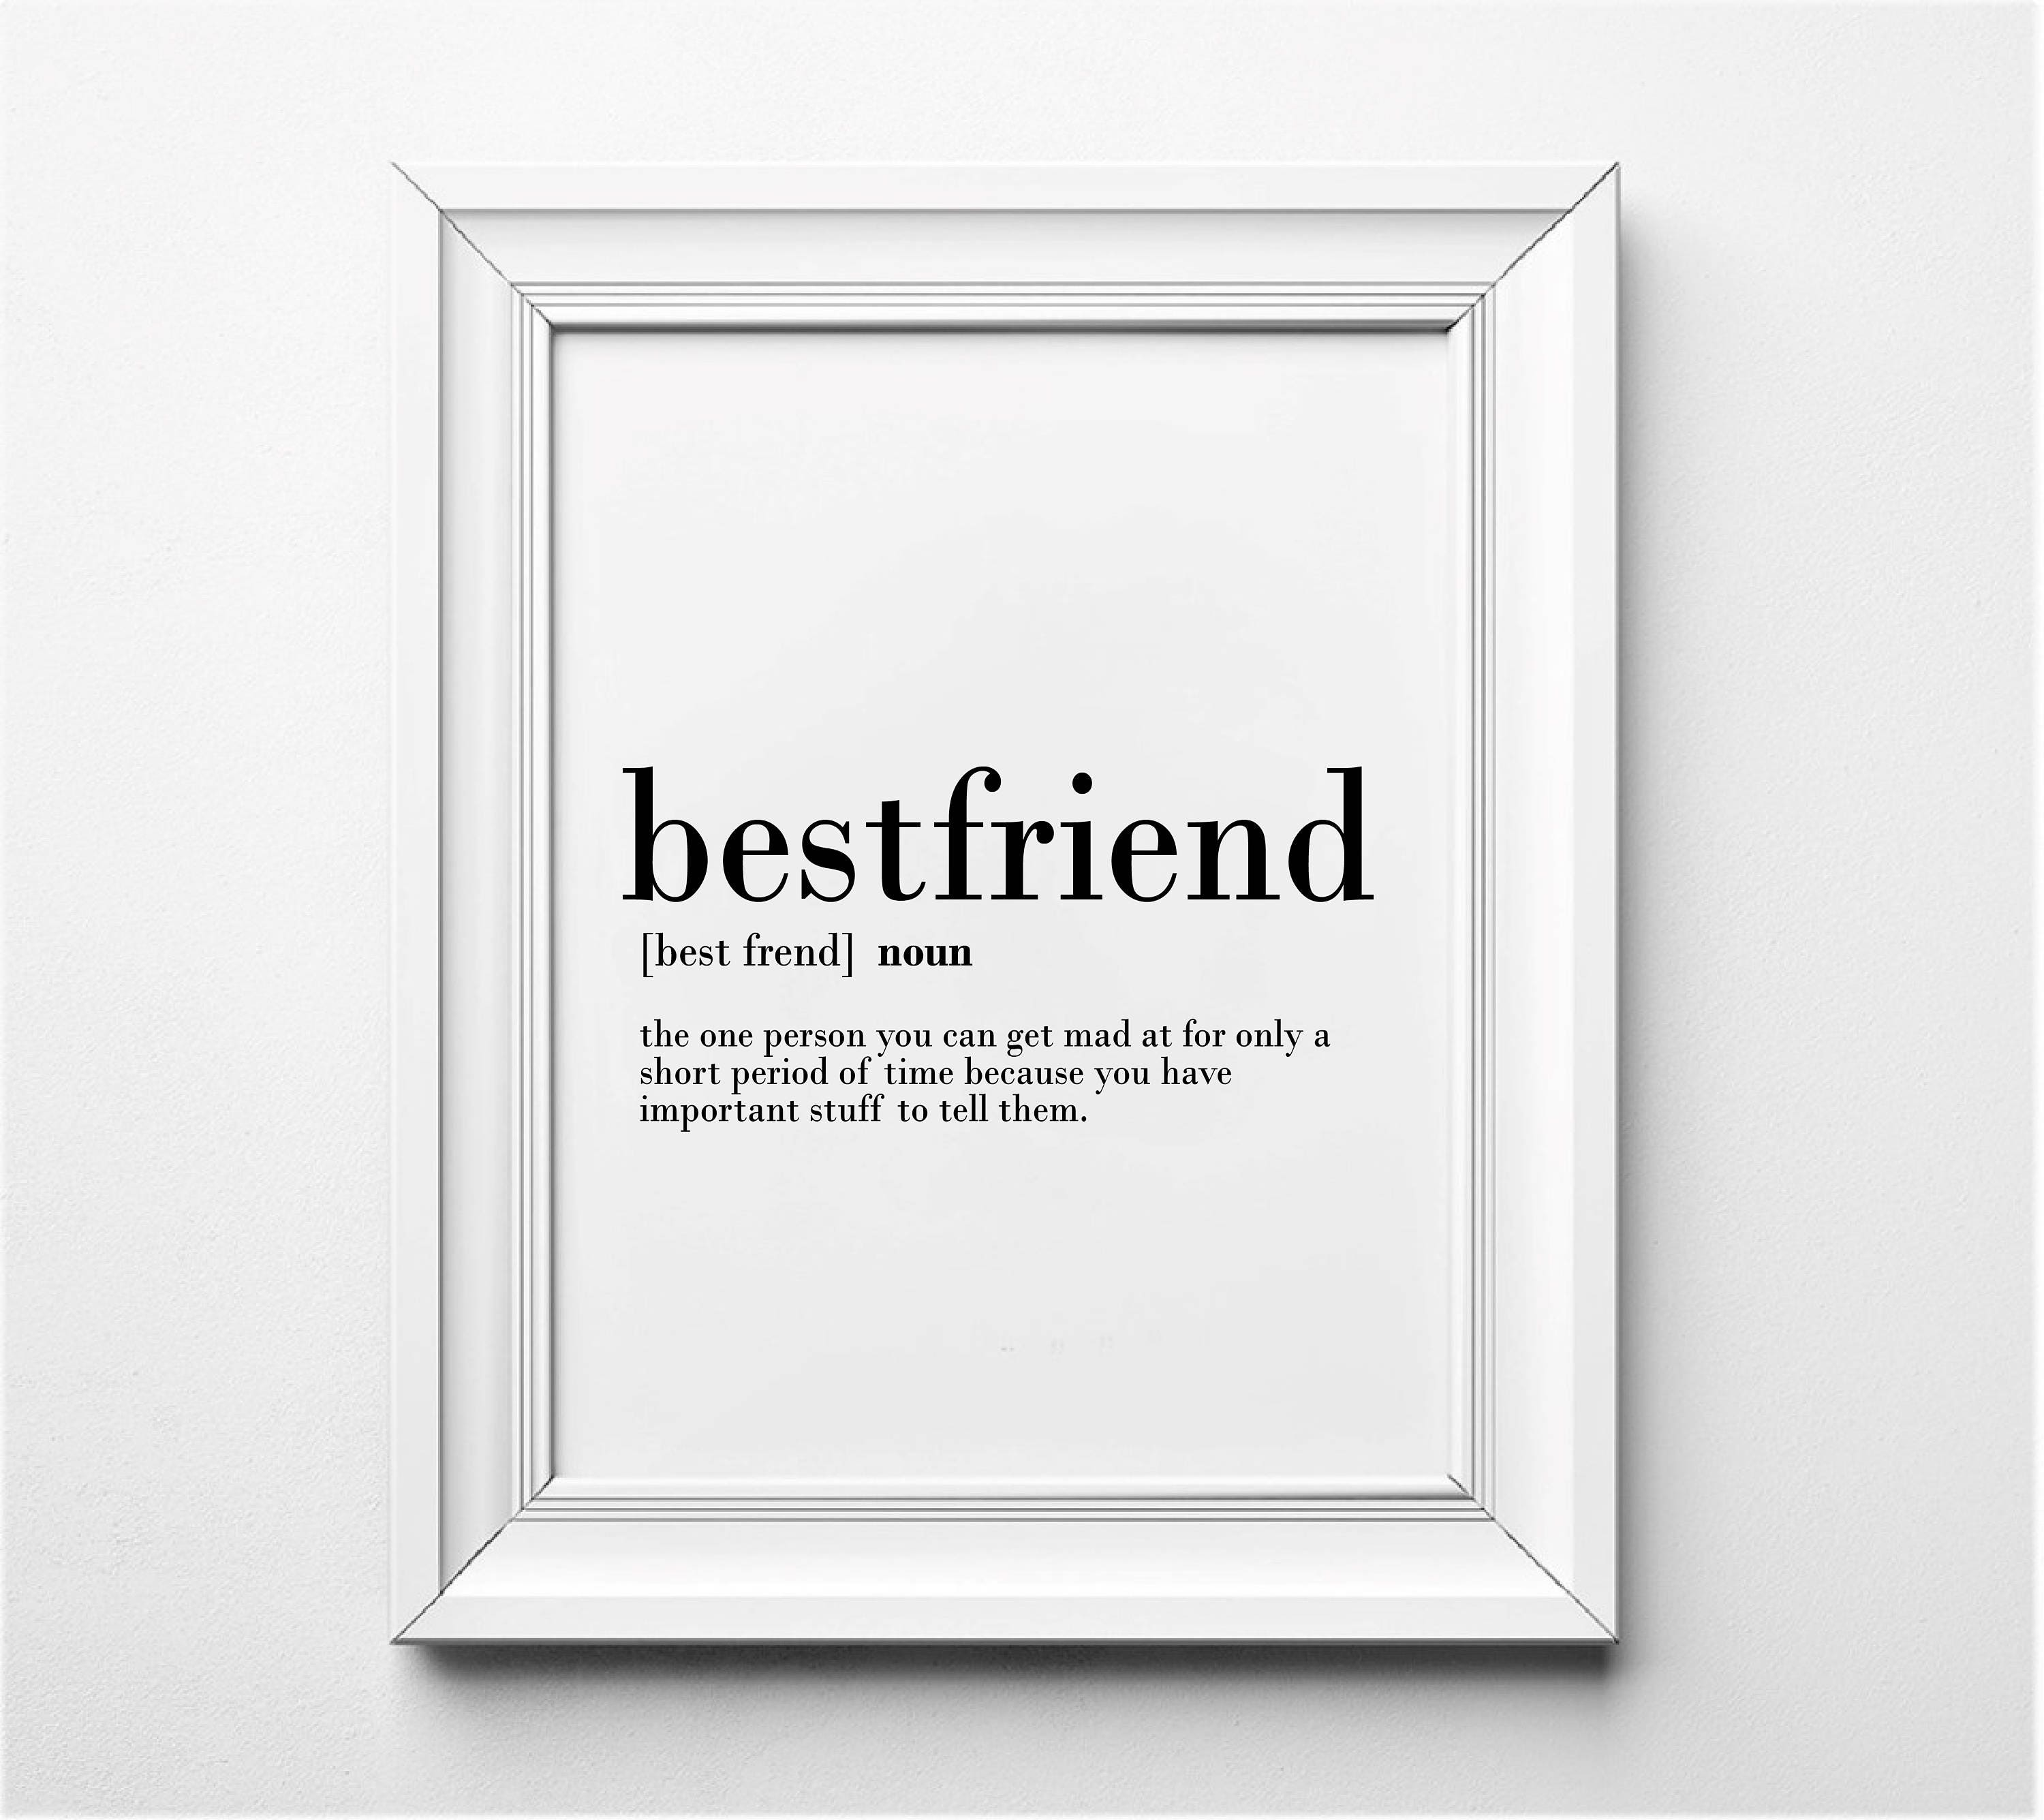 best friends definition funny gift idea for best friends | etsy